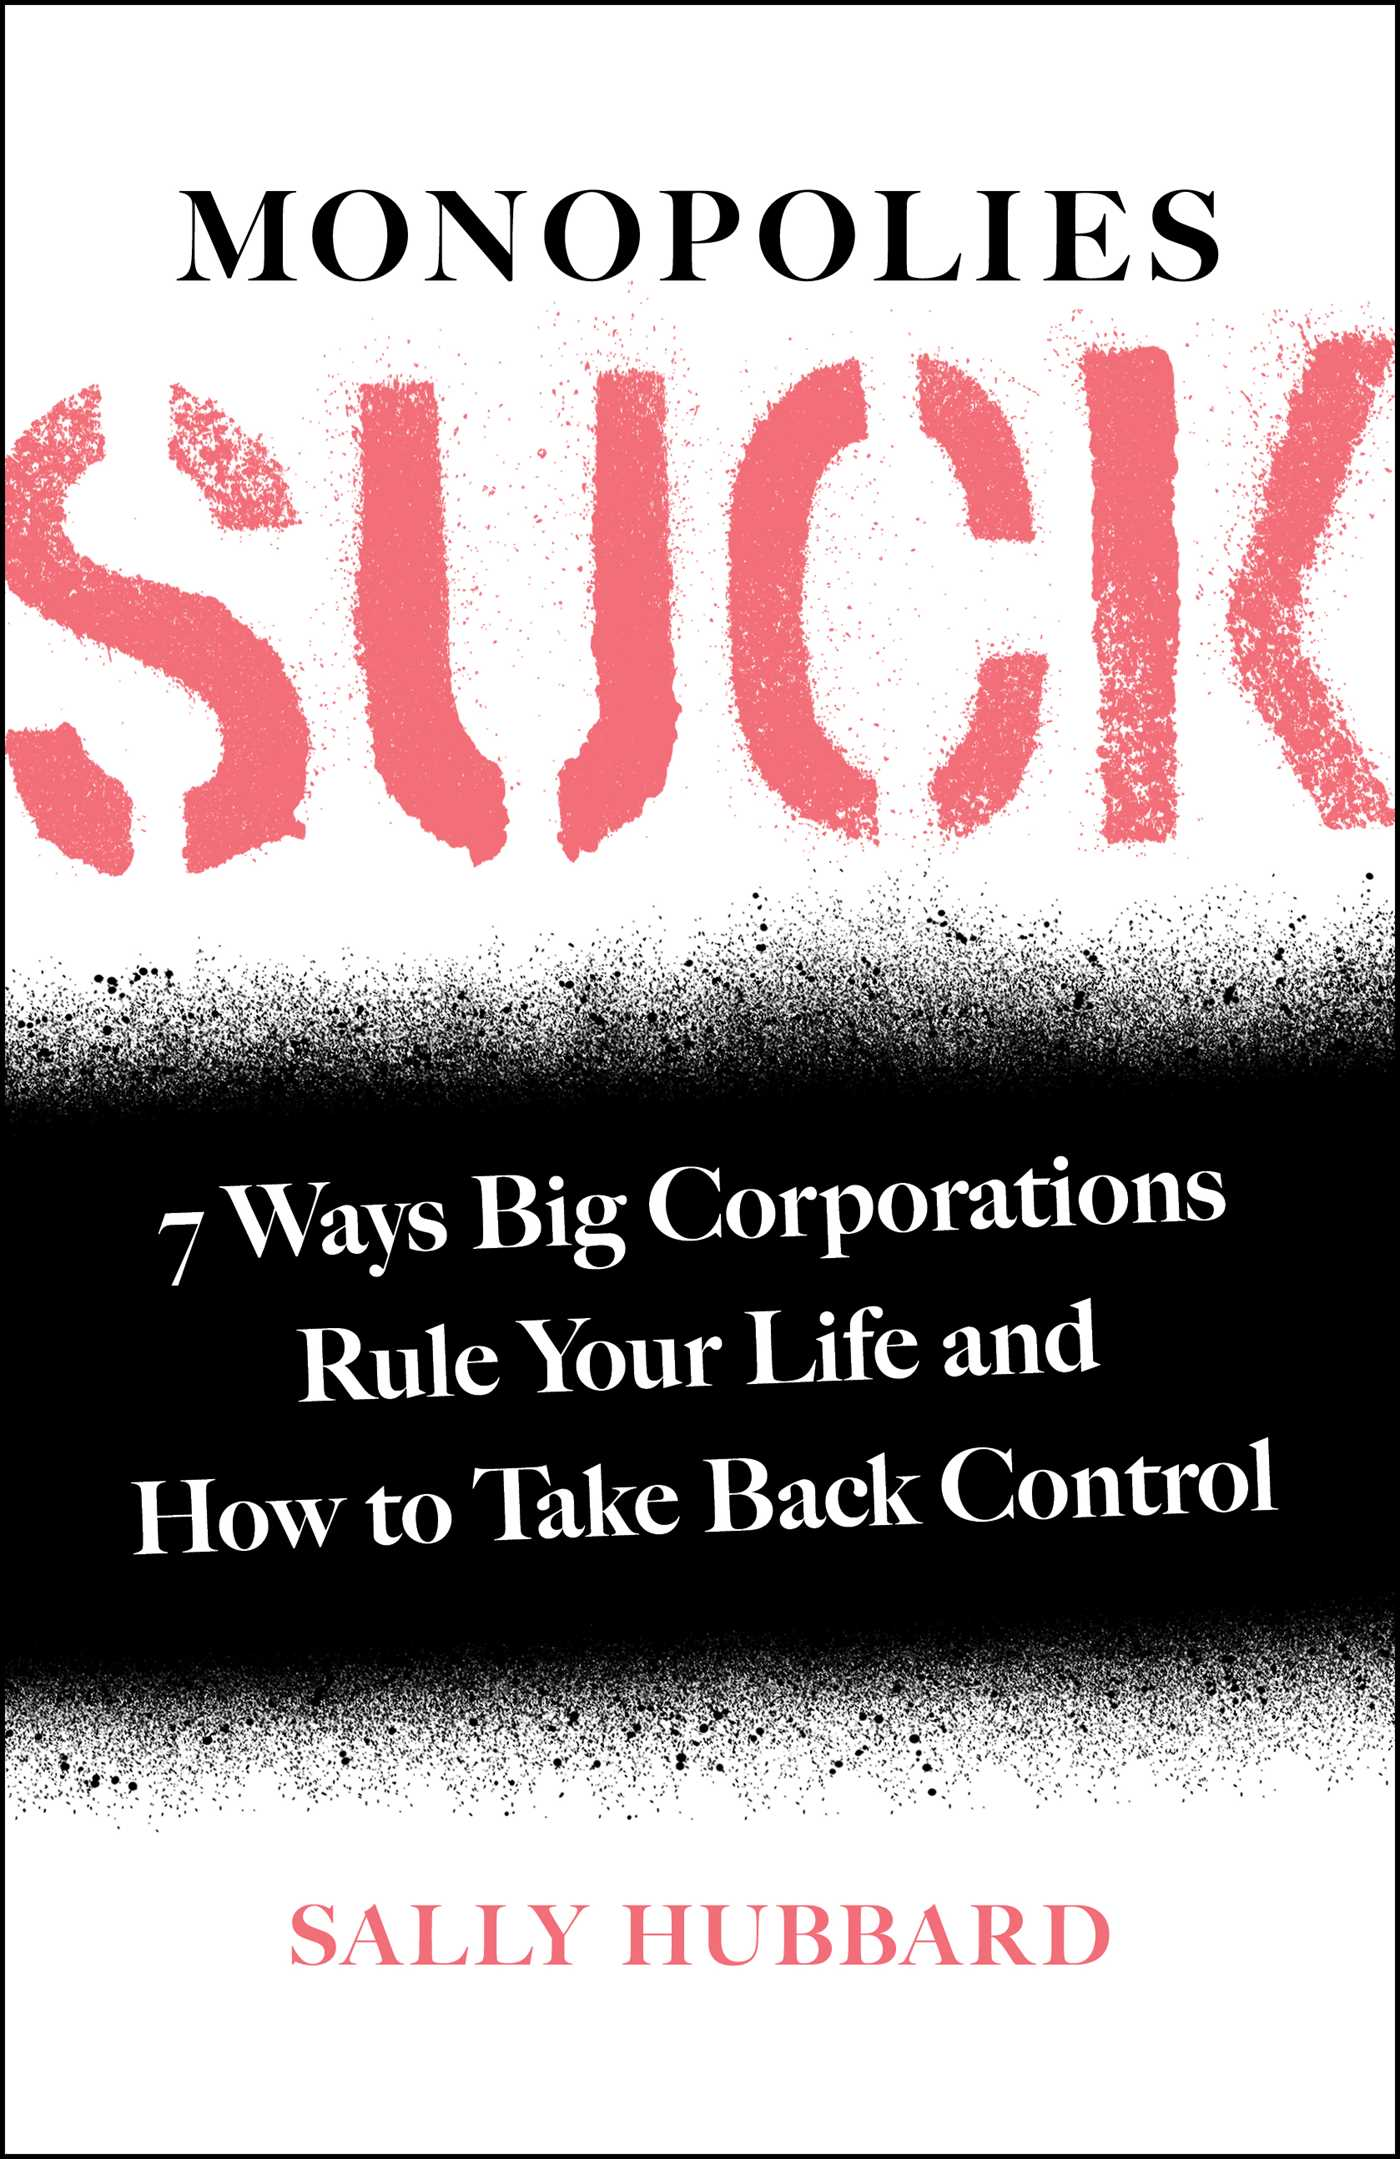 [PDF] [EPUB] Monopolies Suck: 7 Ways Big Corporations Rule Your Life and How to Take Back Control Download by Sally Hubbard